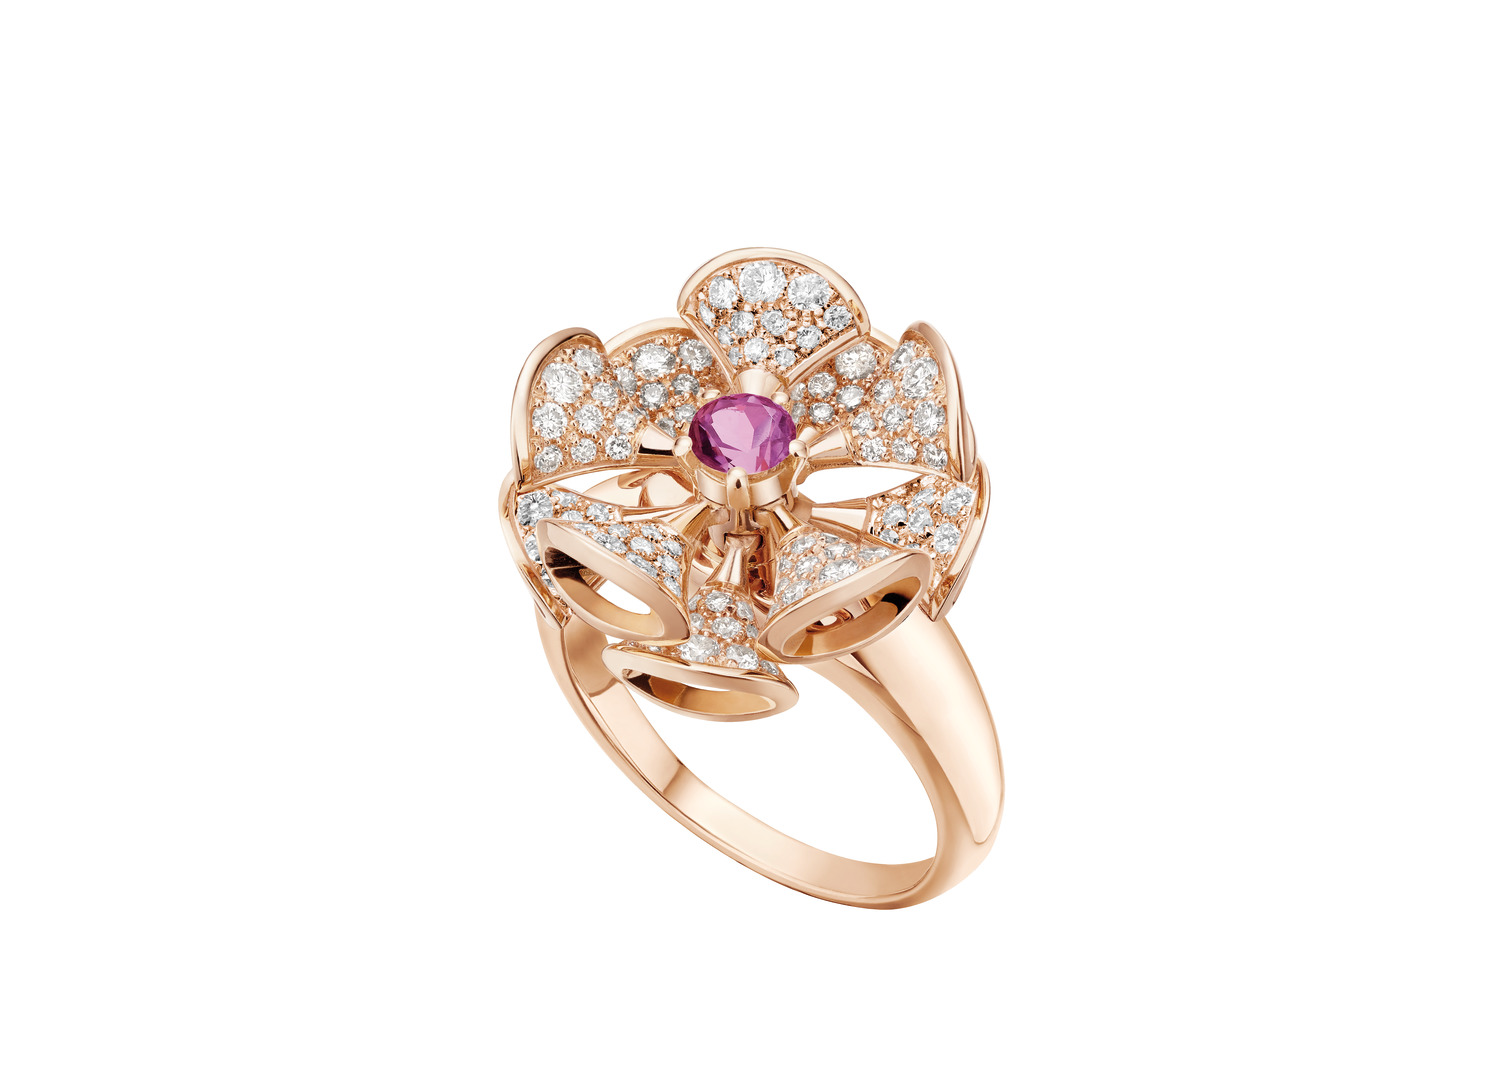 BVLGARI 'DIVAS' DREAM ring in 18 kt rose gold